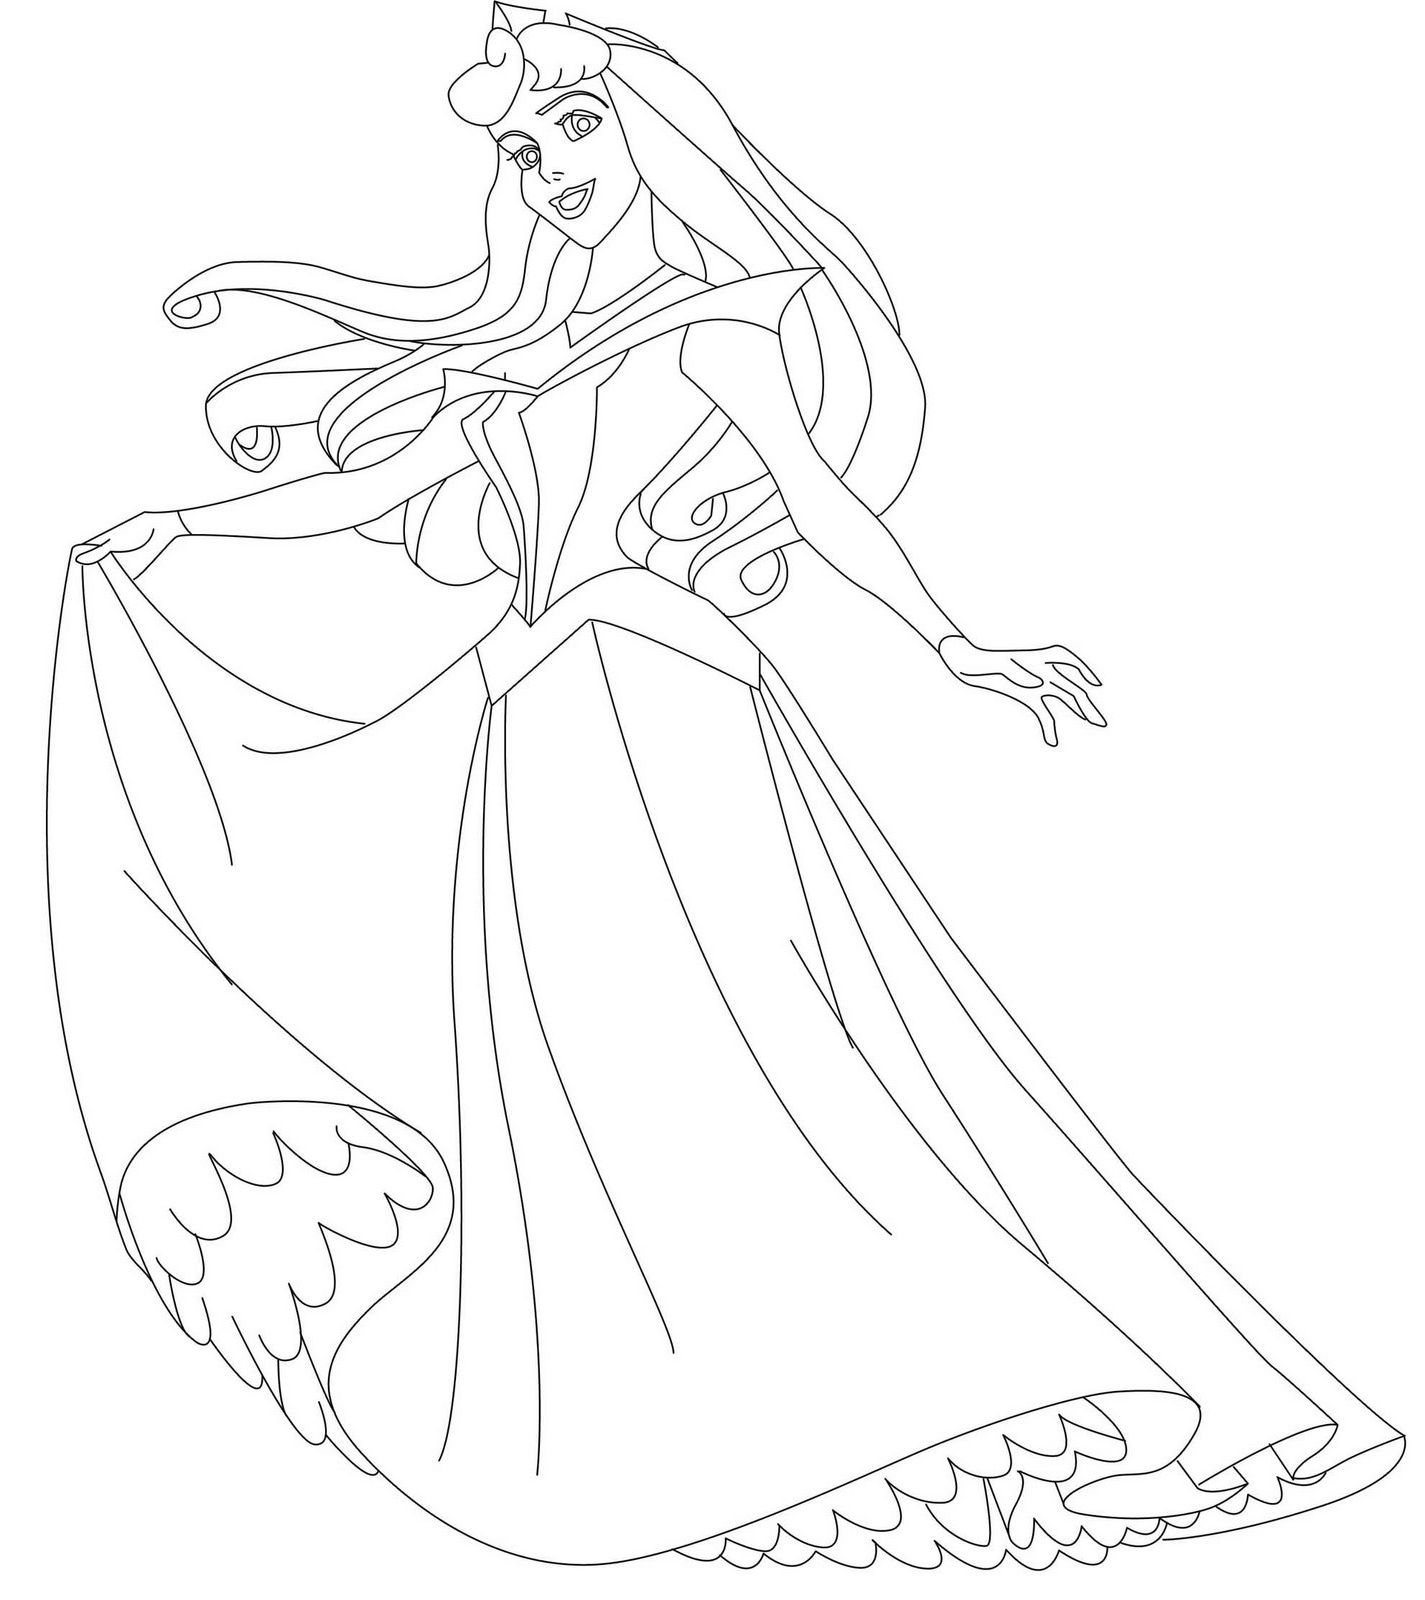 Disney Characters Coloring Pages  GetColoringPagescom